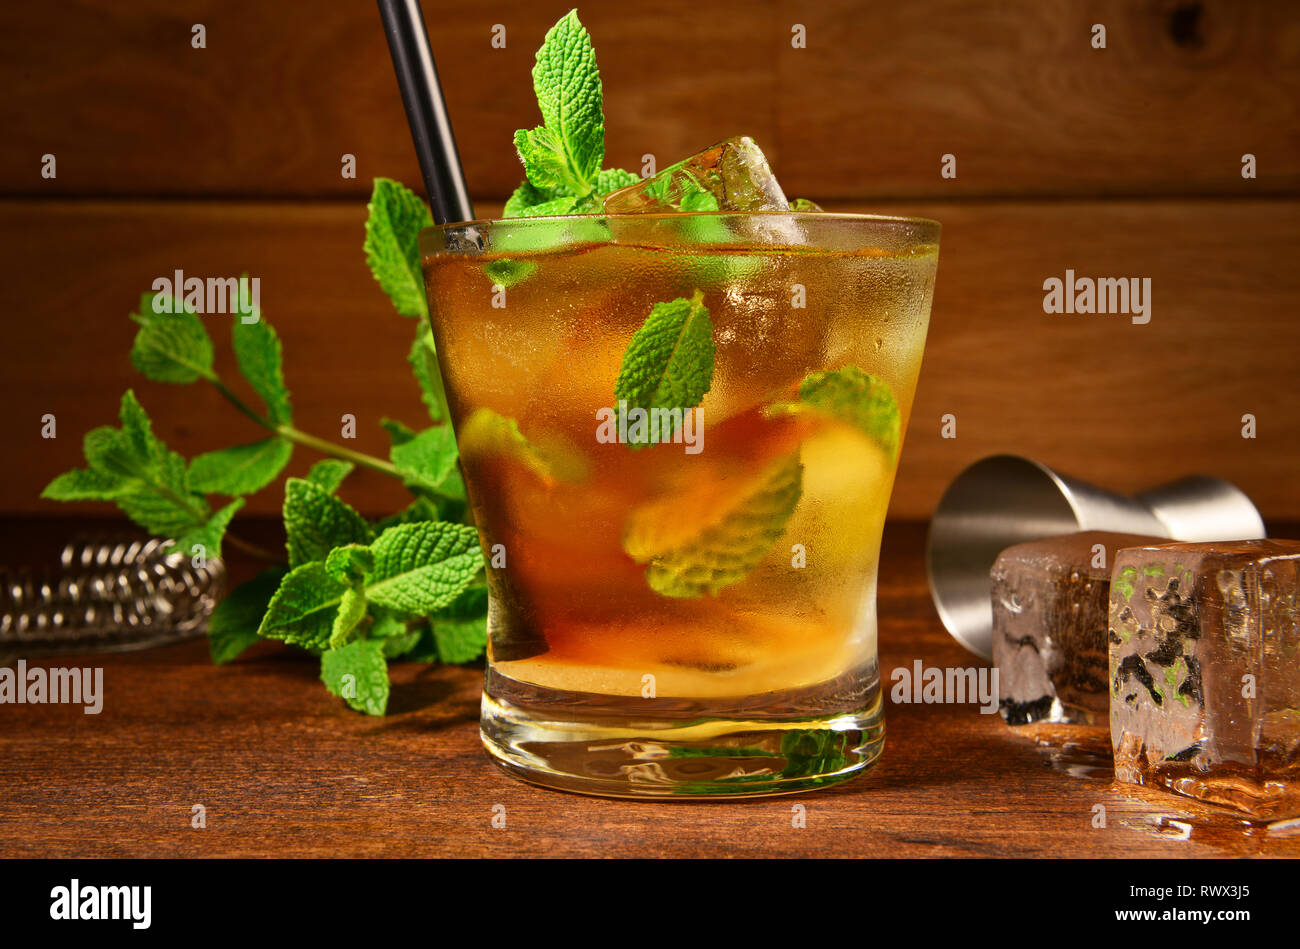 Mint Whisky Cocktail on wooden Background - Stock Image